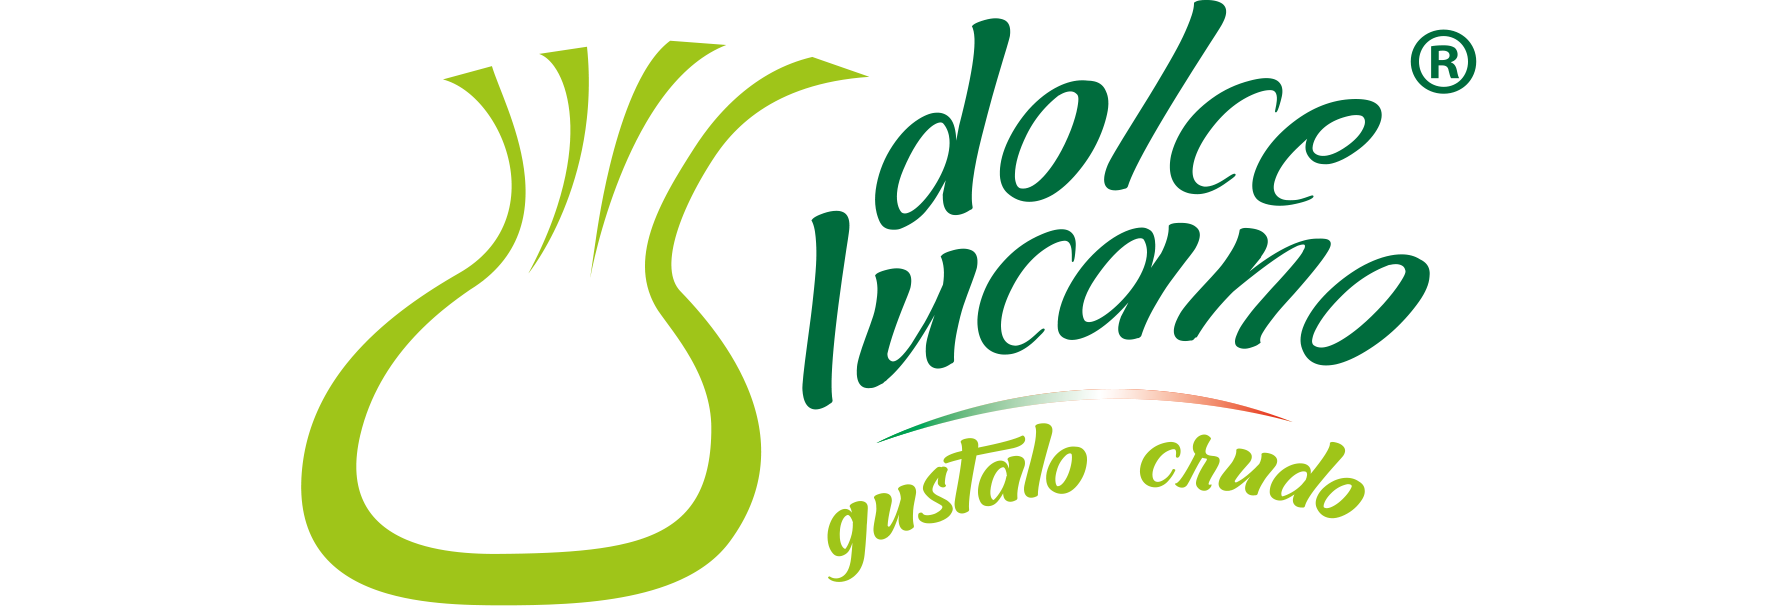 Dolce lucano